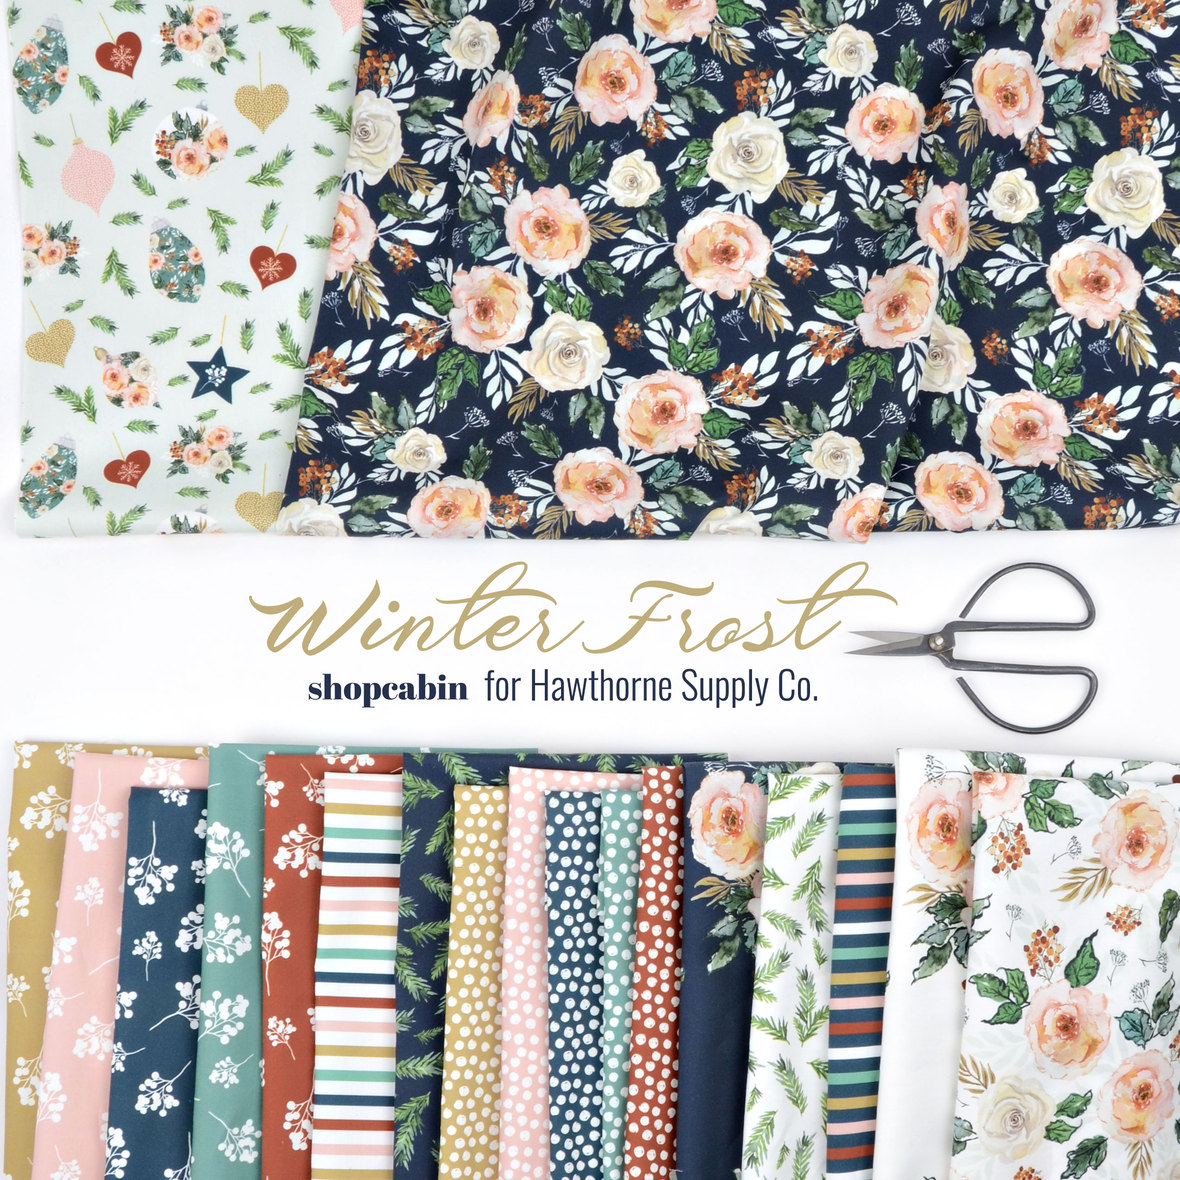 Winter-Frost-Fabric-from-Shopcabin-for-Hawthrone-Supply-Co.